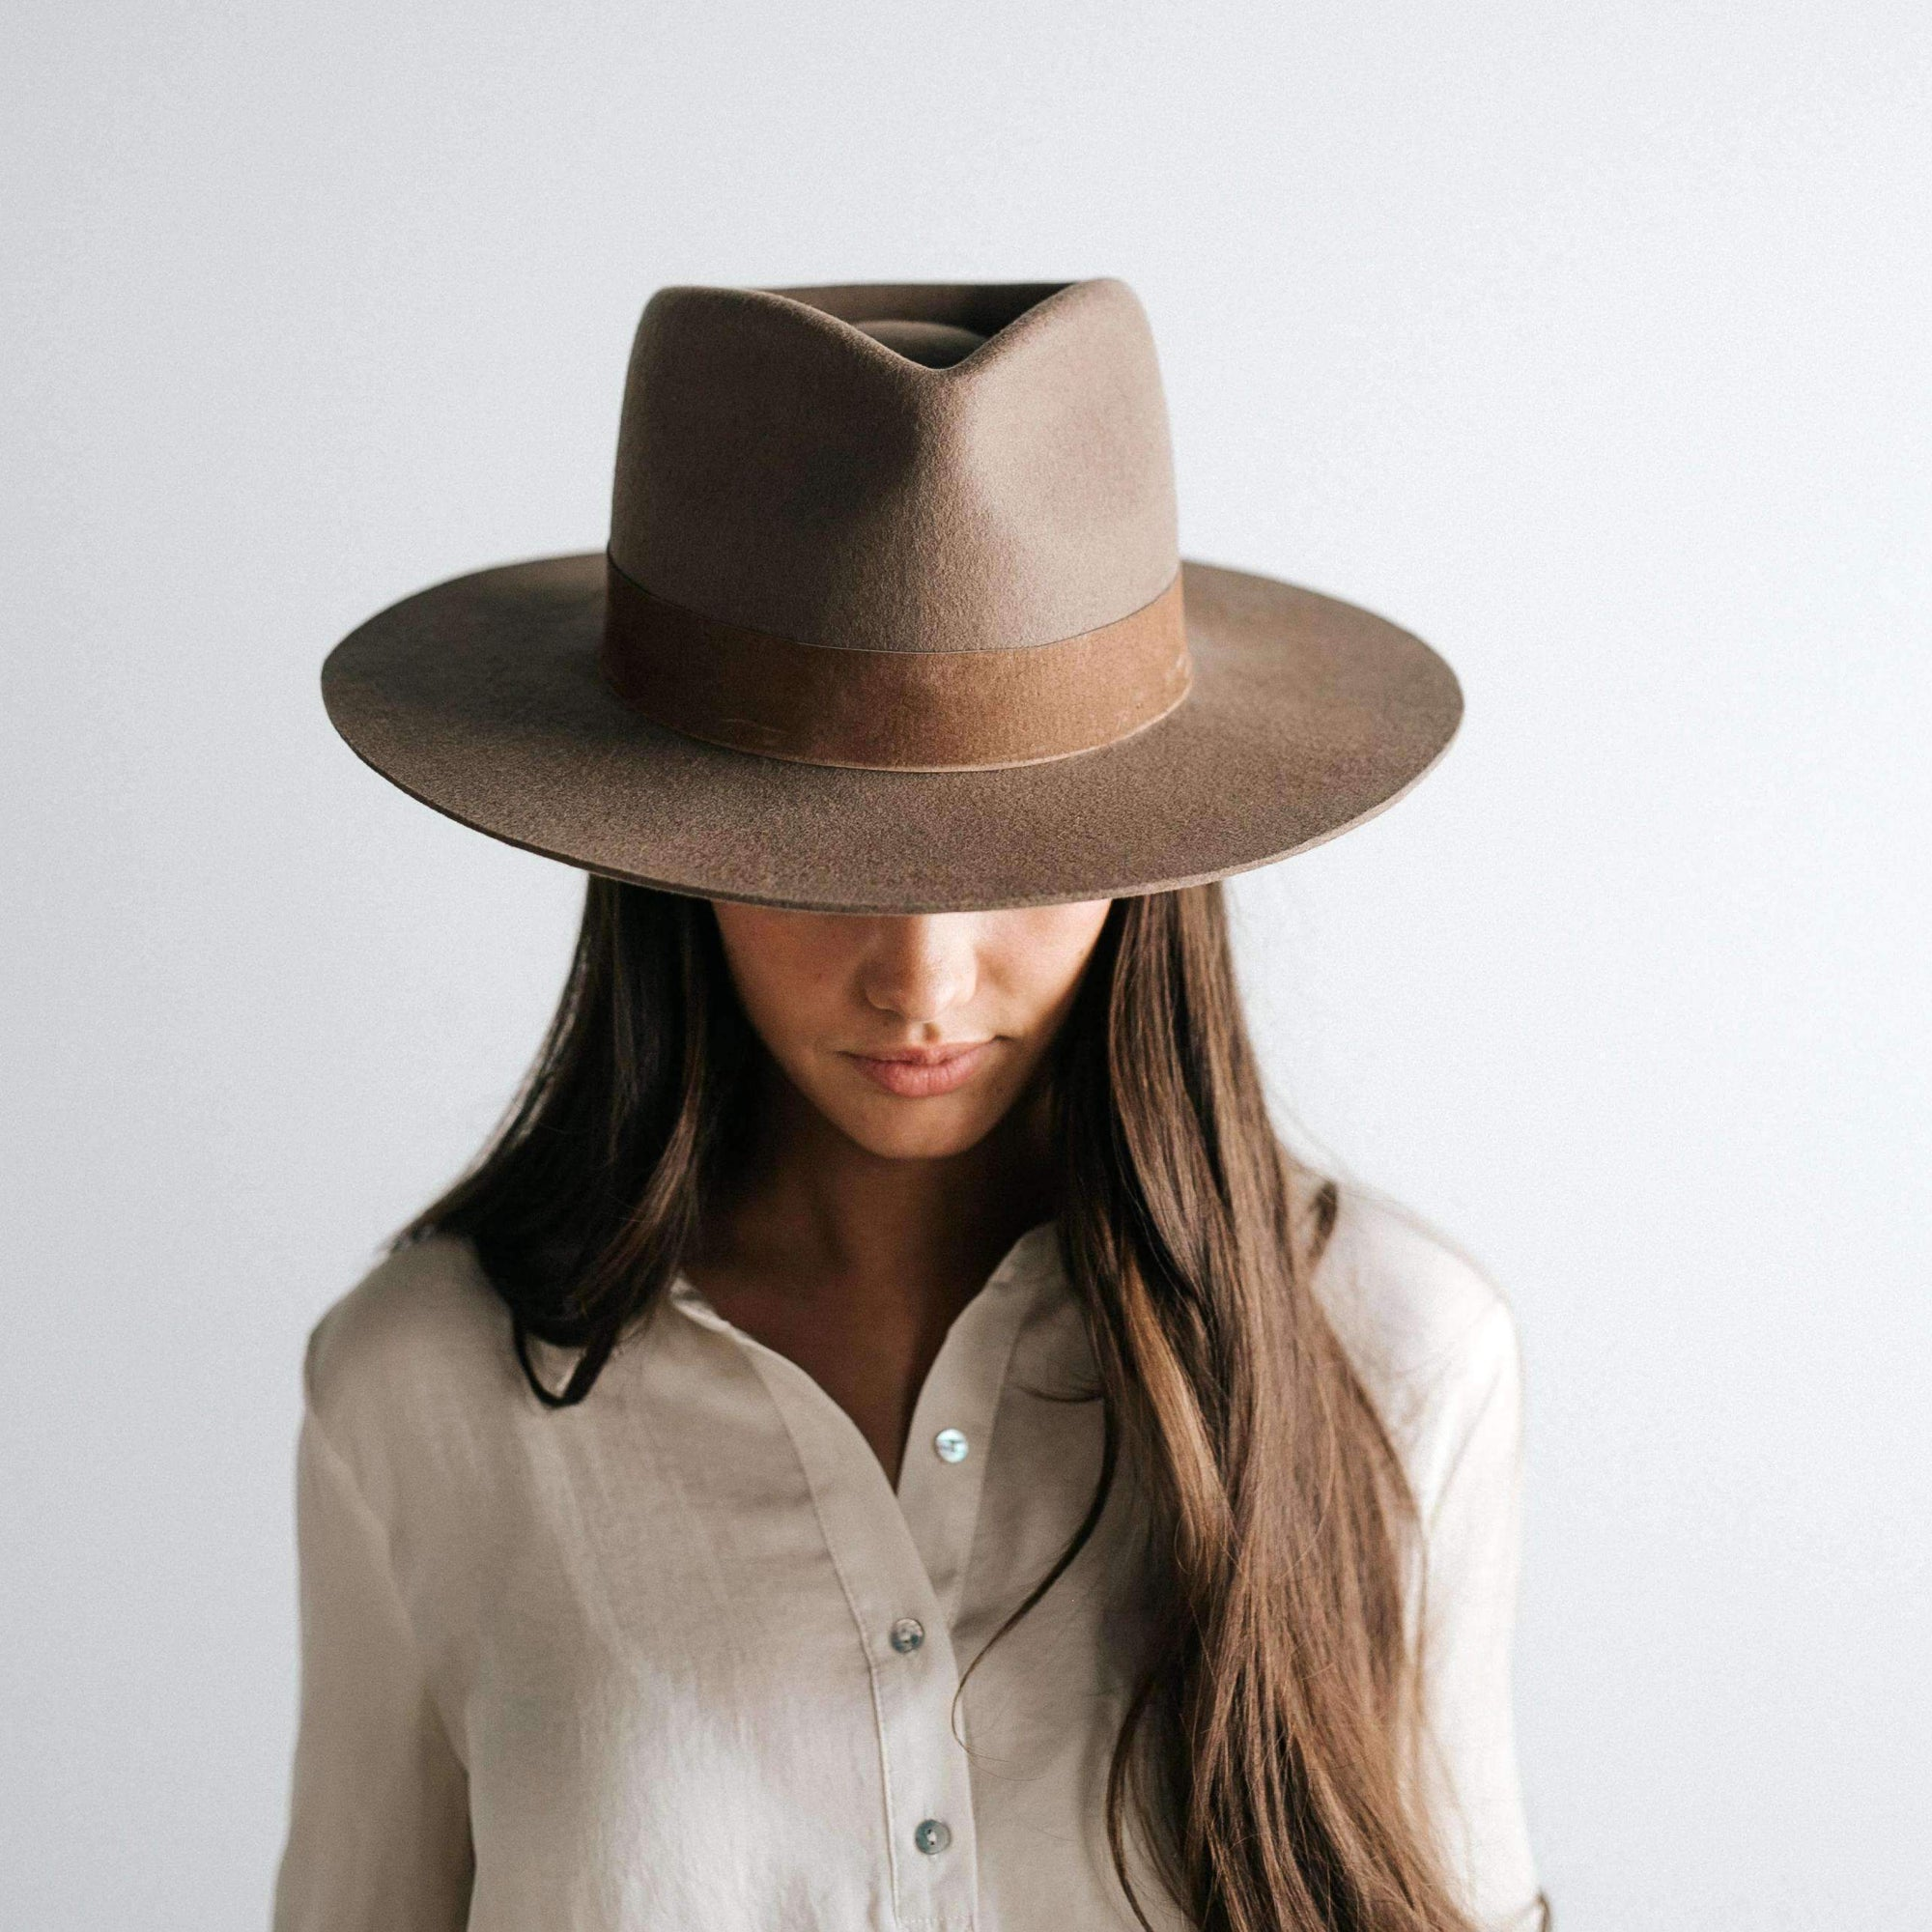 GIGI PIP Hats for Women- Miller Fedora - Brown-Felt Hats